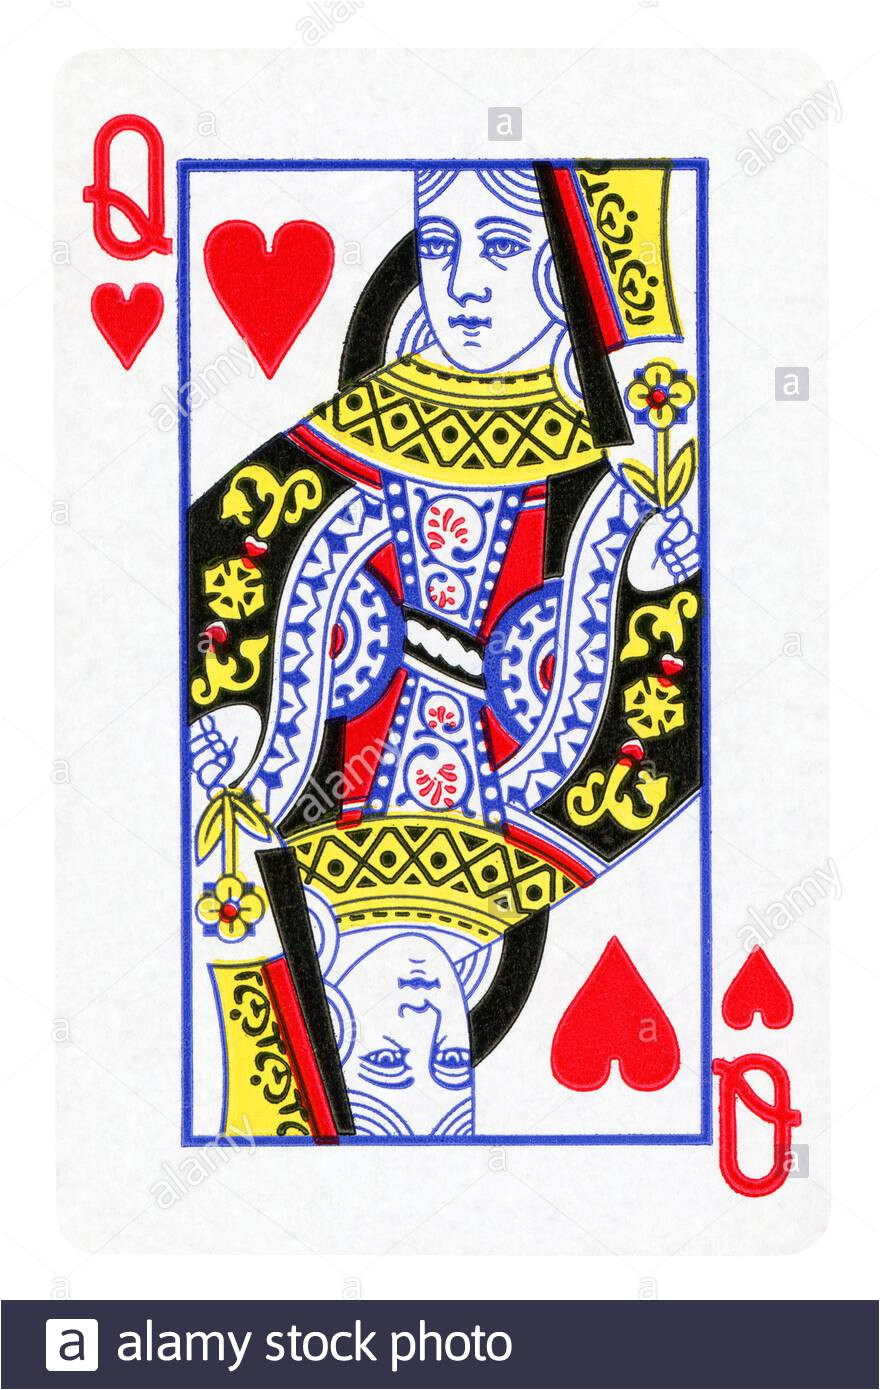 queen of hearts vintage playing card isolated on white clipping path included 2axwweb jpg